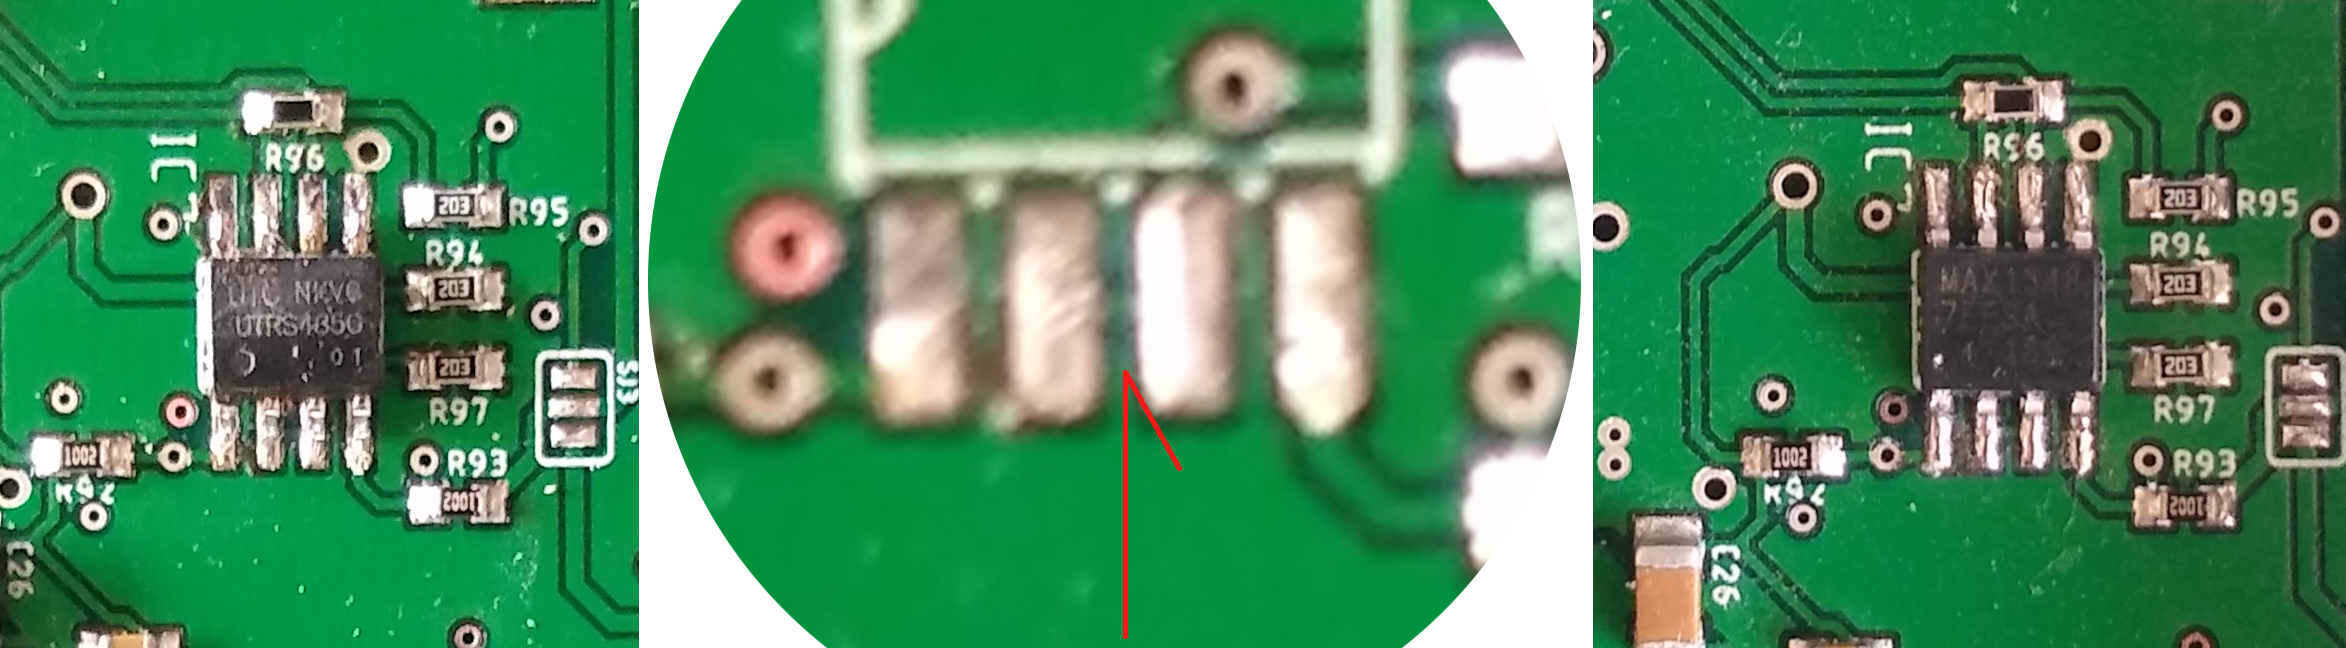 A series of images, from the left to right: the original UTRS485G IC, IC removed with the detail to the pins 2 and 3 confirming they are connected on the PCB, the new MAX13487E IC soldered in place